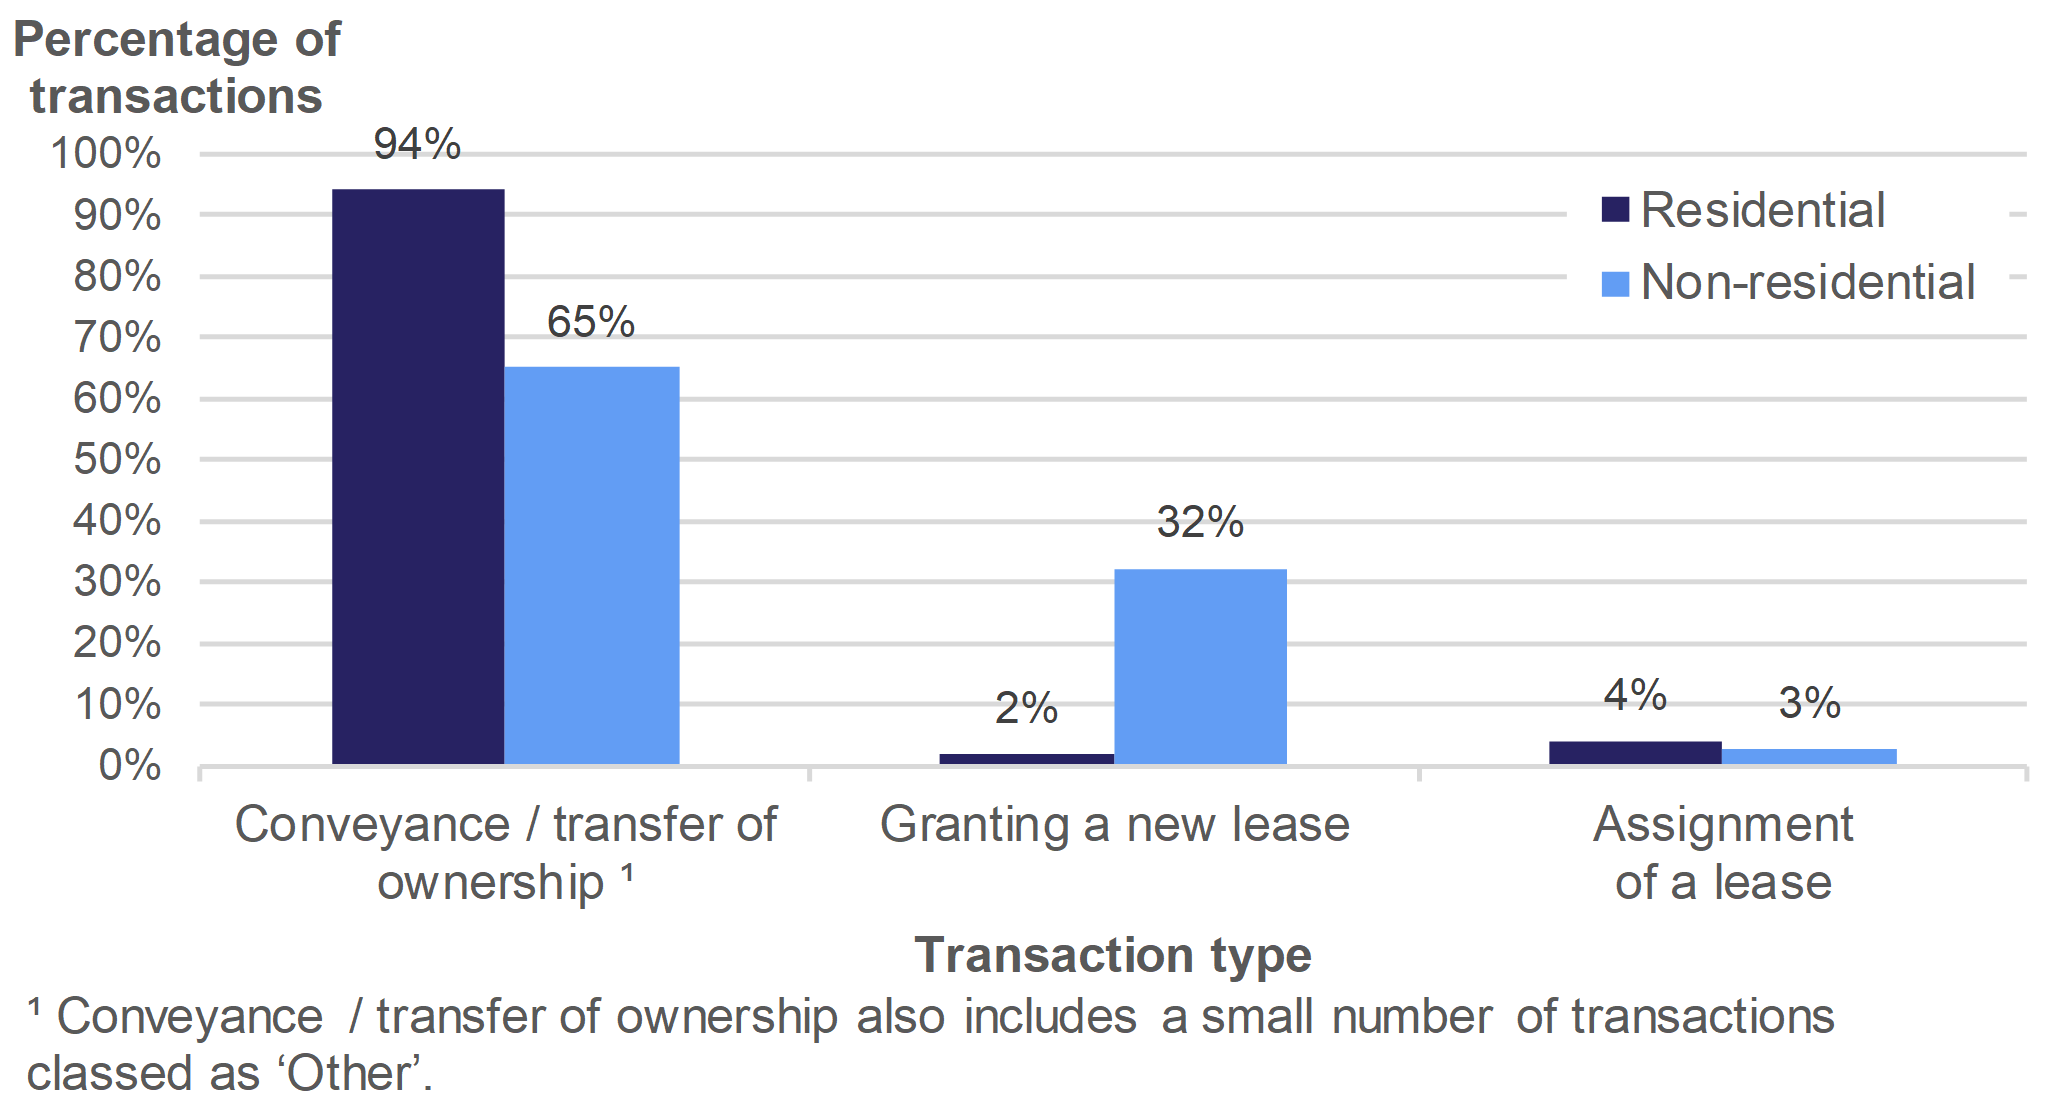 Figure 2.6 shows the percentage of transactions involving conveyance / transfer of ownership, granting of a new lease or assignment of a lease, for July to September 2019. Separate percentages are given for residential and non-residential transactions.